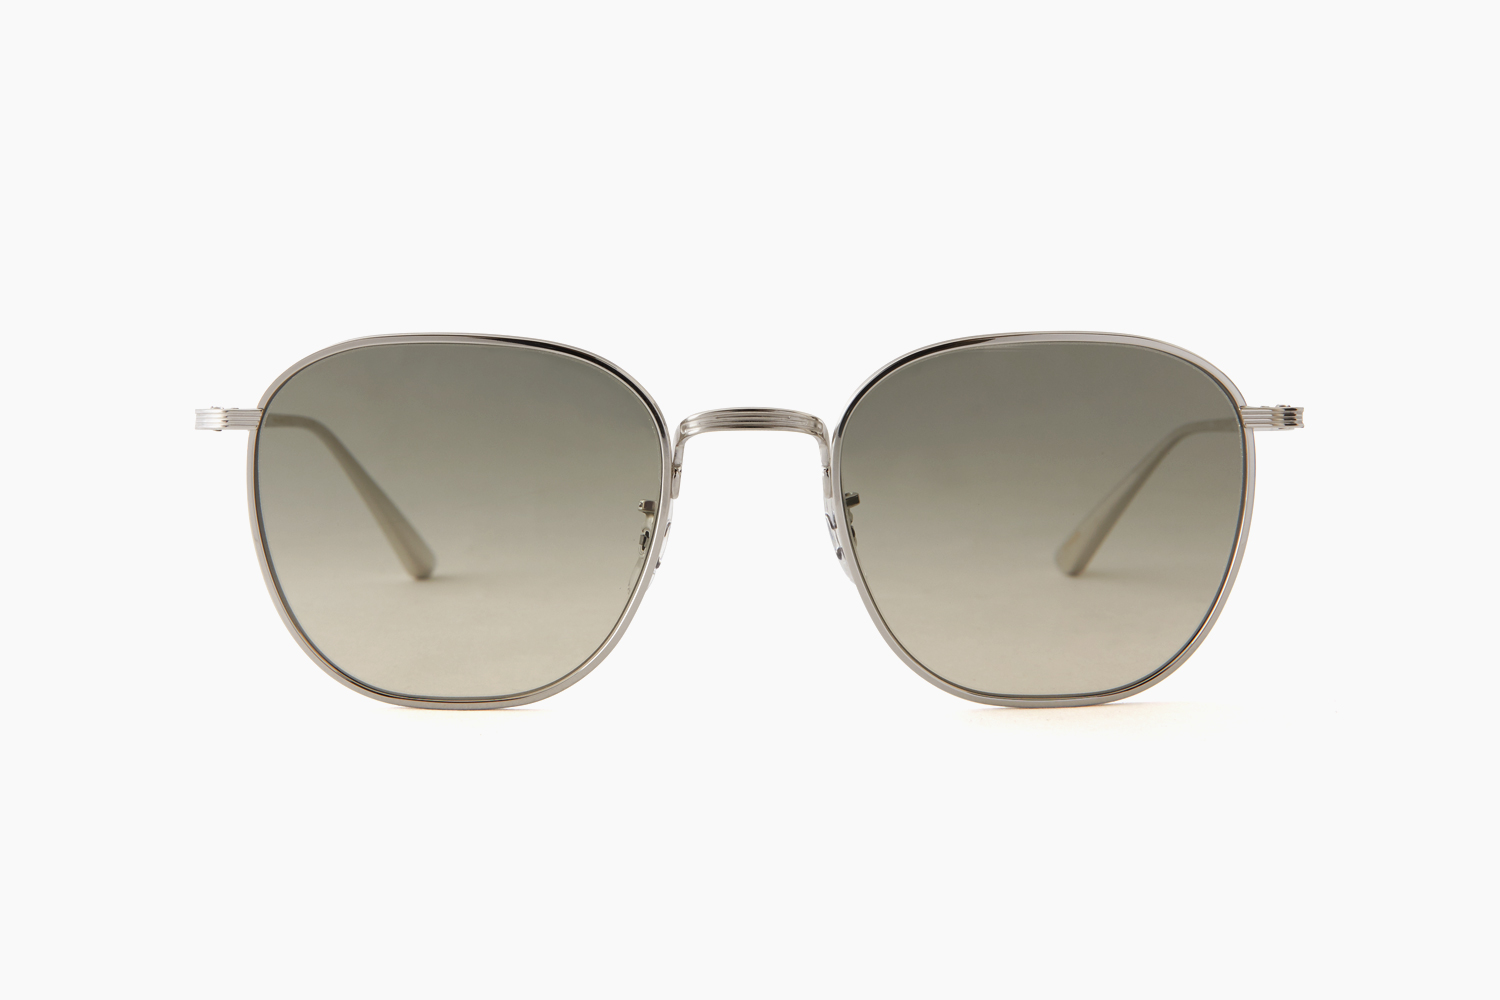 OLIVER PEOPLES THE ROW|Board Meeting 2 - Silver|SUNGLASSES COLLECTION - 21SS